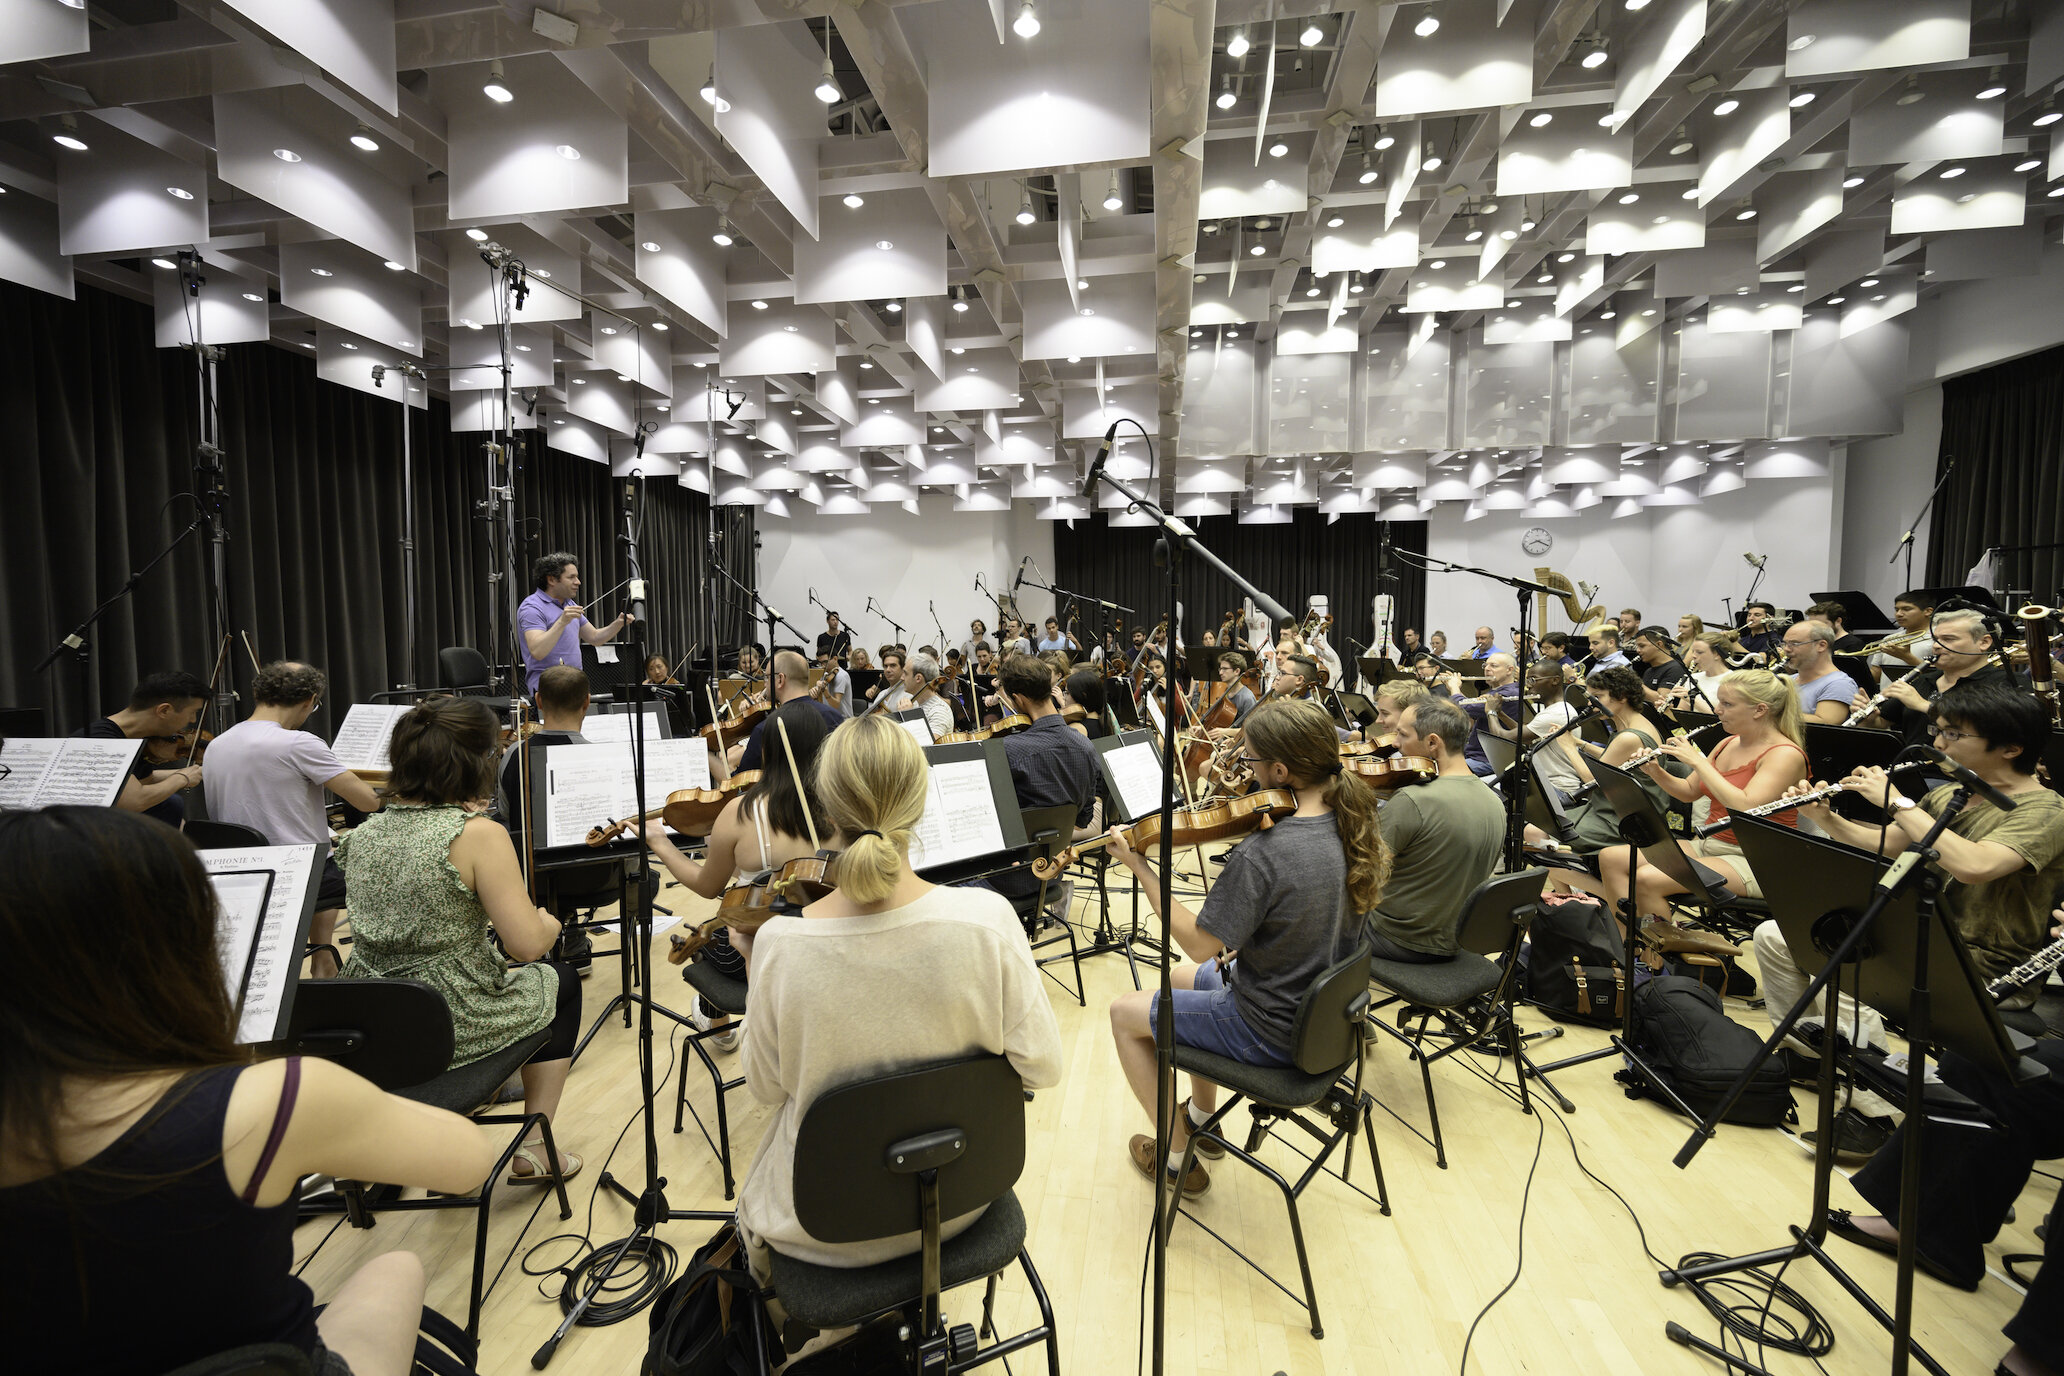 Gustavo Dudamel rehearses with Dudamel Foundation Artists and members of the Mahler Chamber Orchestra in Spain, August 2019. Photo by May Zircus.